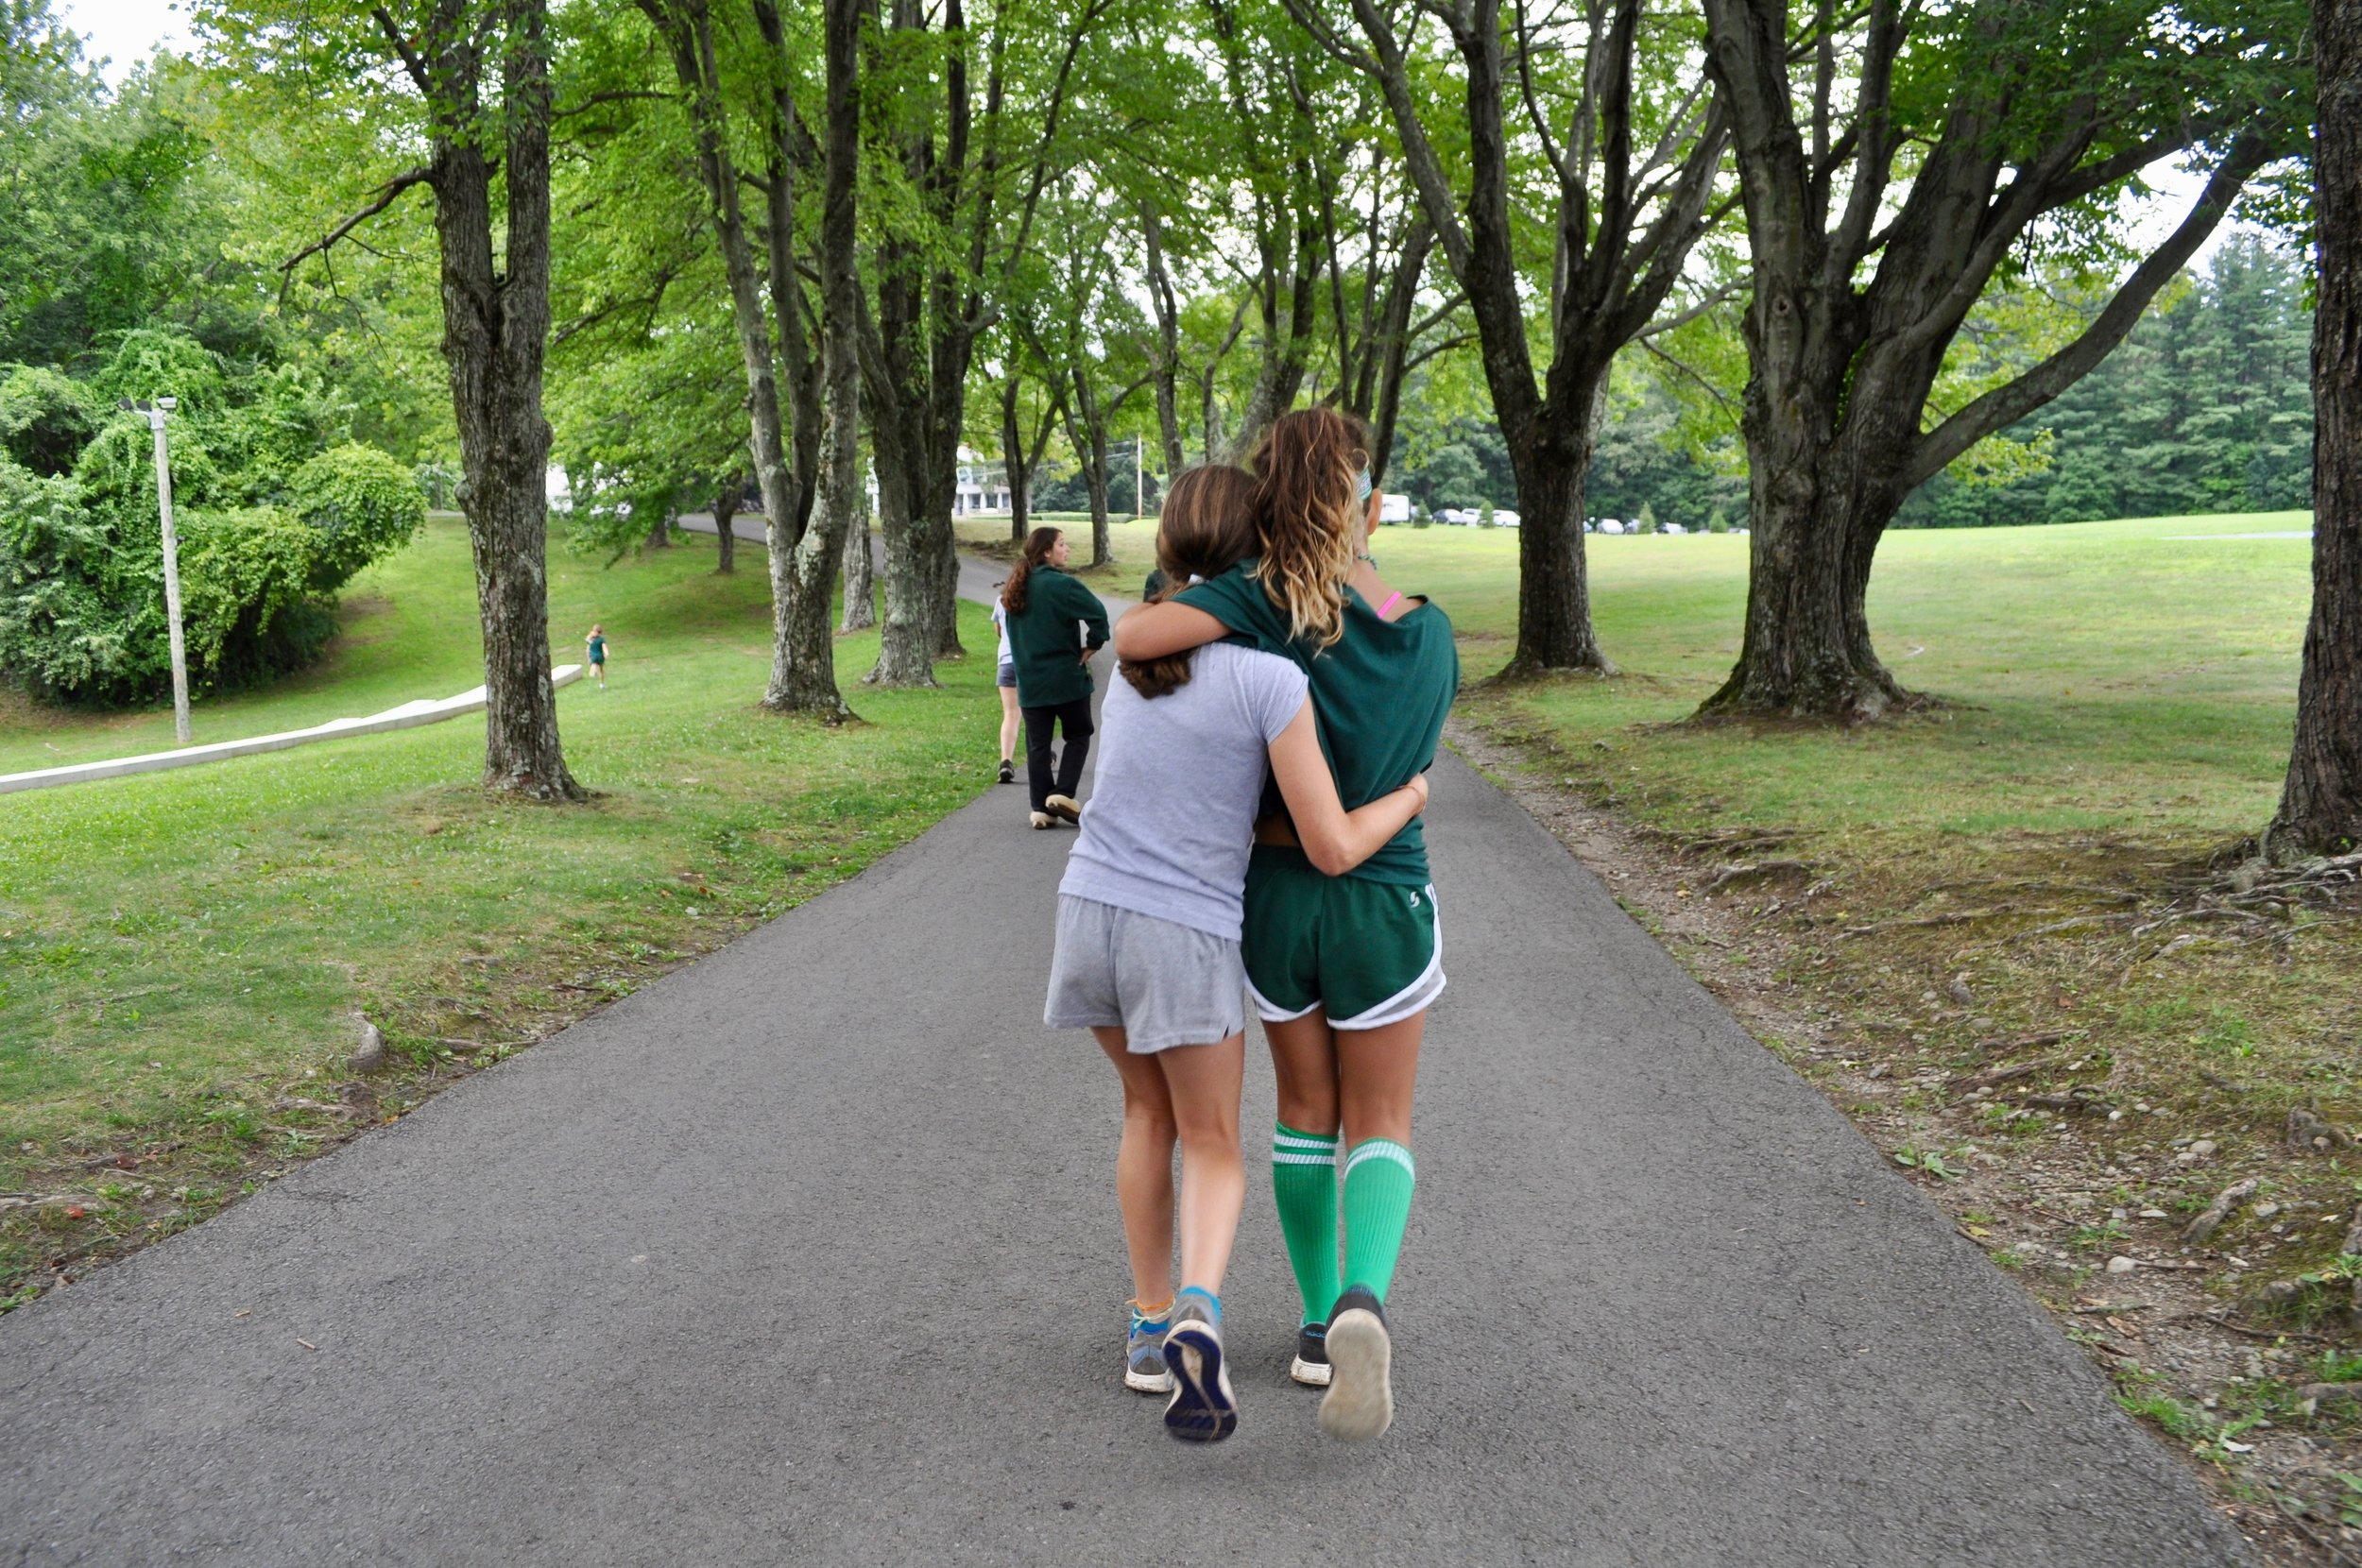 Campers take a time out on the team rivalry to display their friendship